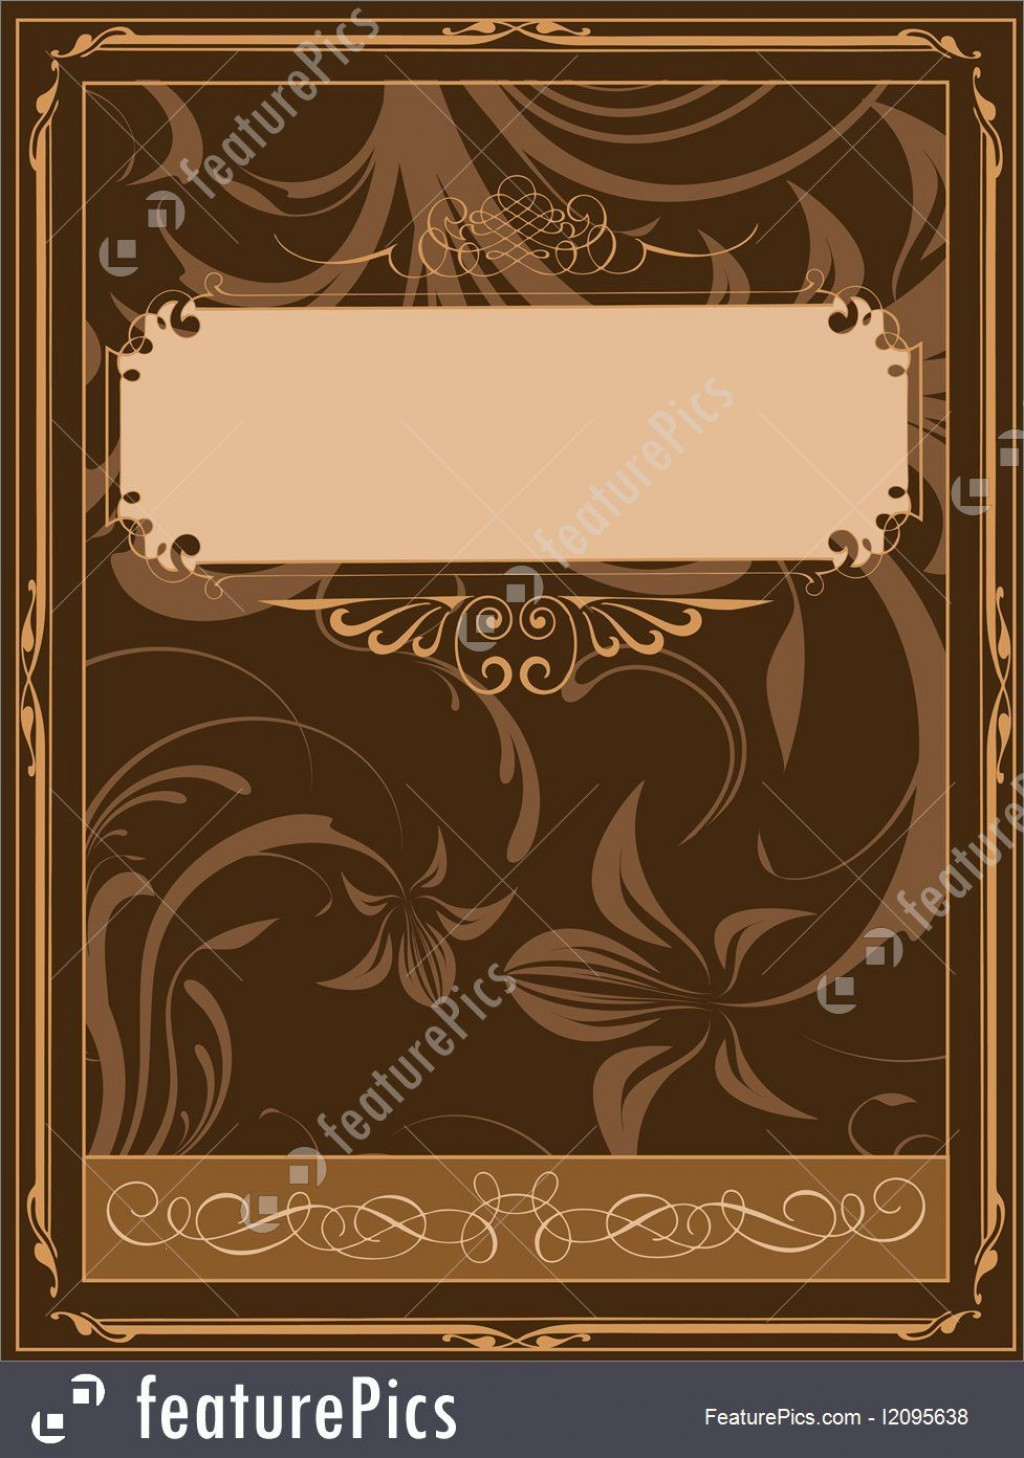 009 Wonderful Old Book Cover Template Design  Fashioned WordLarge